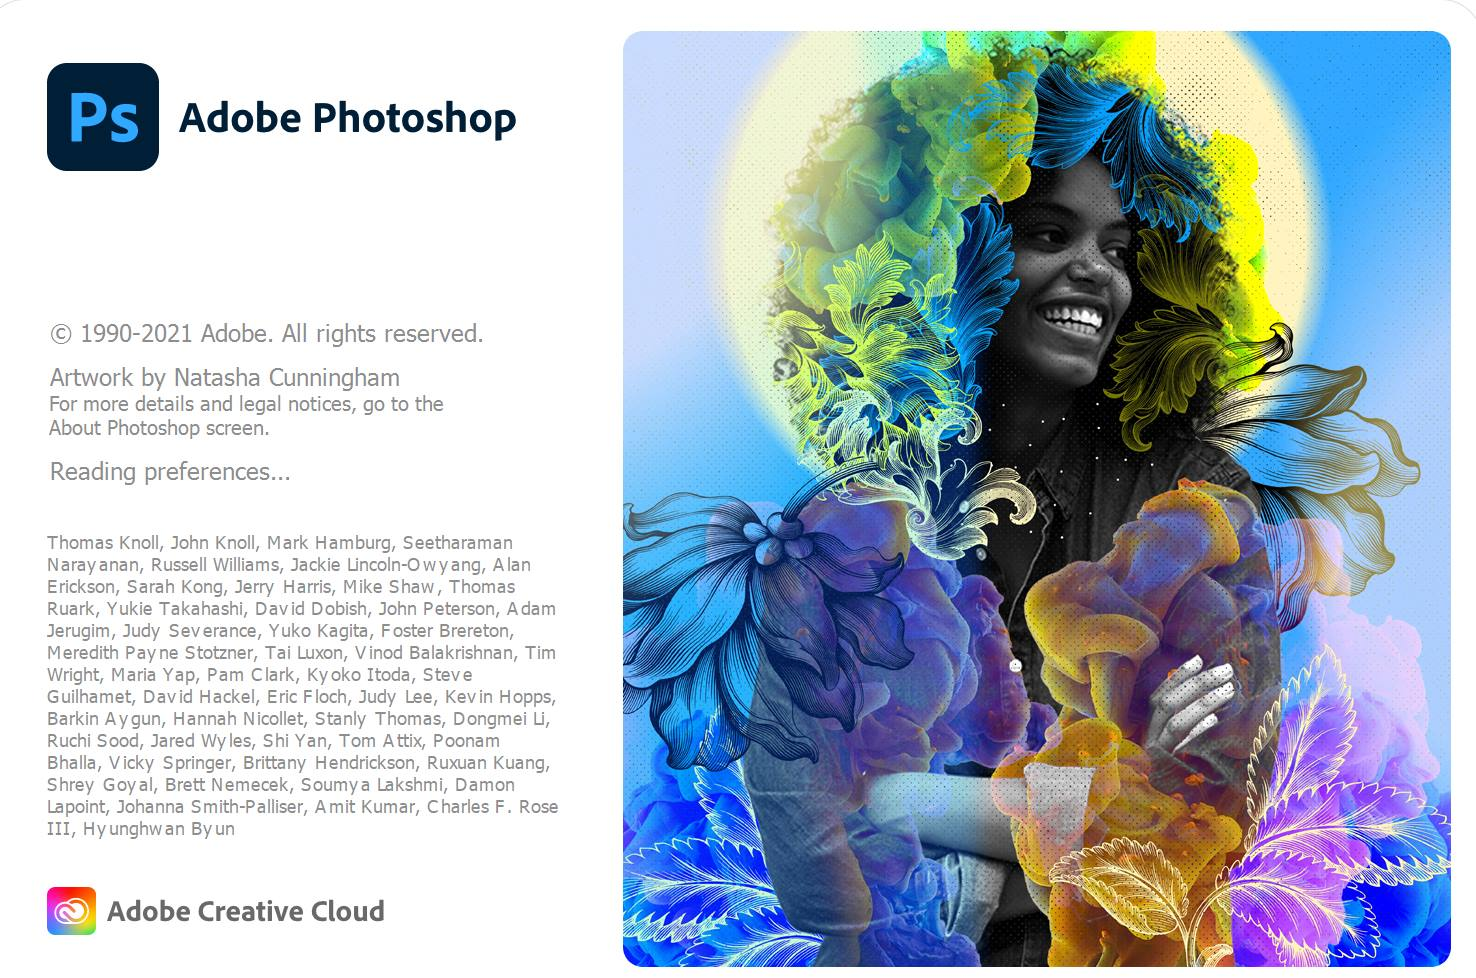 What's New in Adobe Photoshop 2022 (and Camera RAW 14)